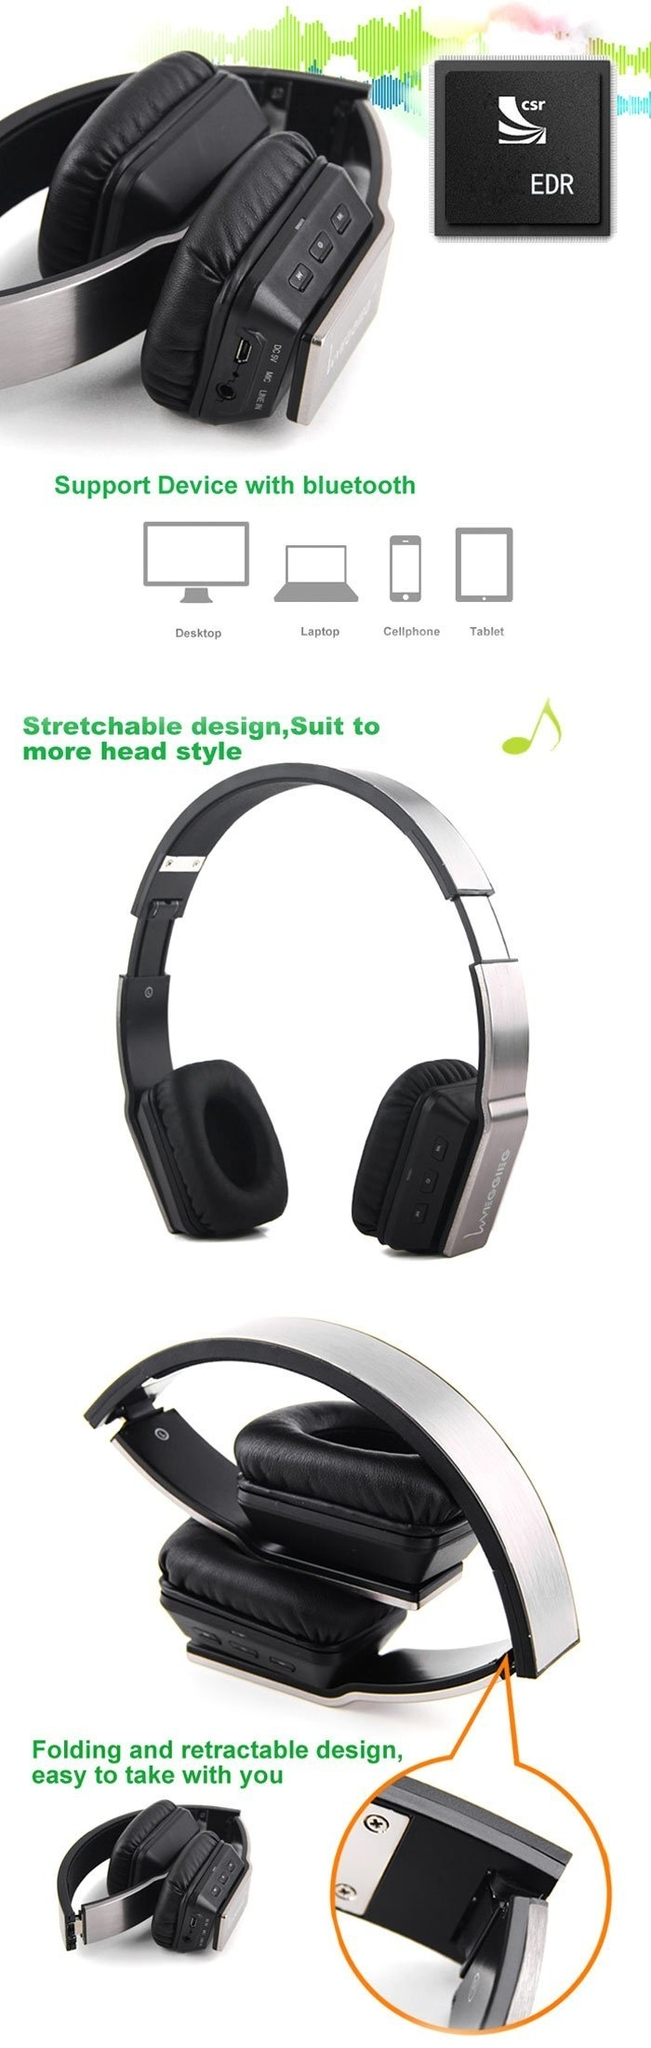 VEGGIEG V8200 Stretch Wireless Bluetooth V4.0 + EDR Hands Free Headset MP3 Music Headphone with 3.5mm Jack and Micro USB Interface for iPhonefor Samsung Smartphones Laptop etc.